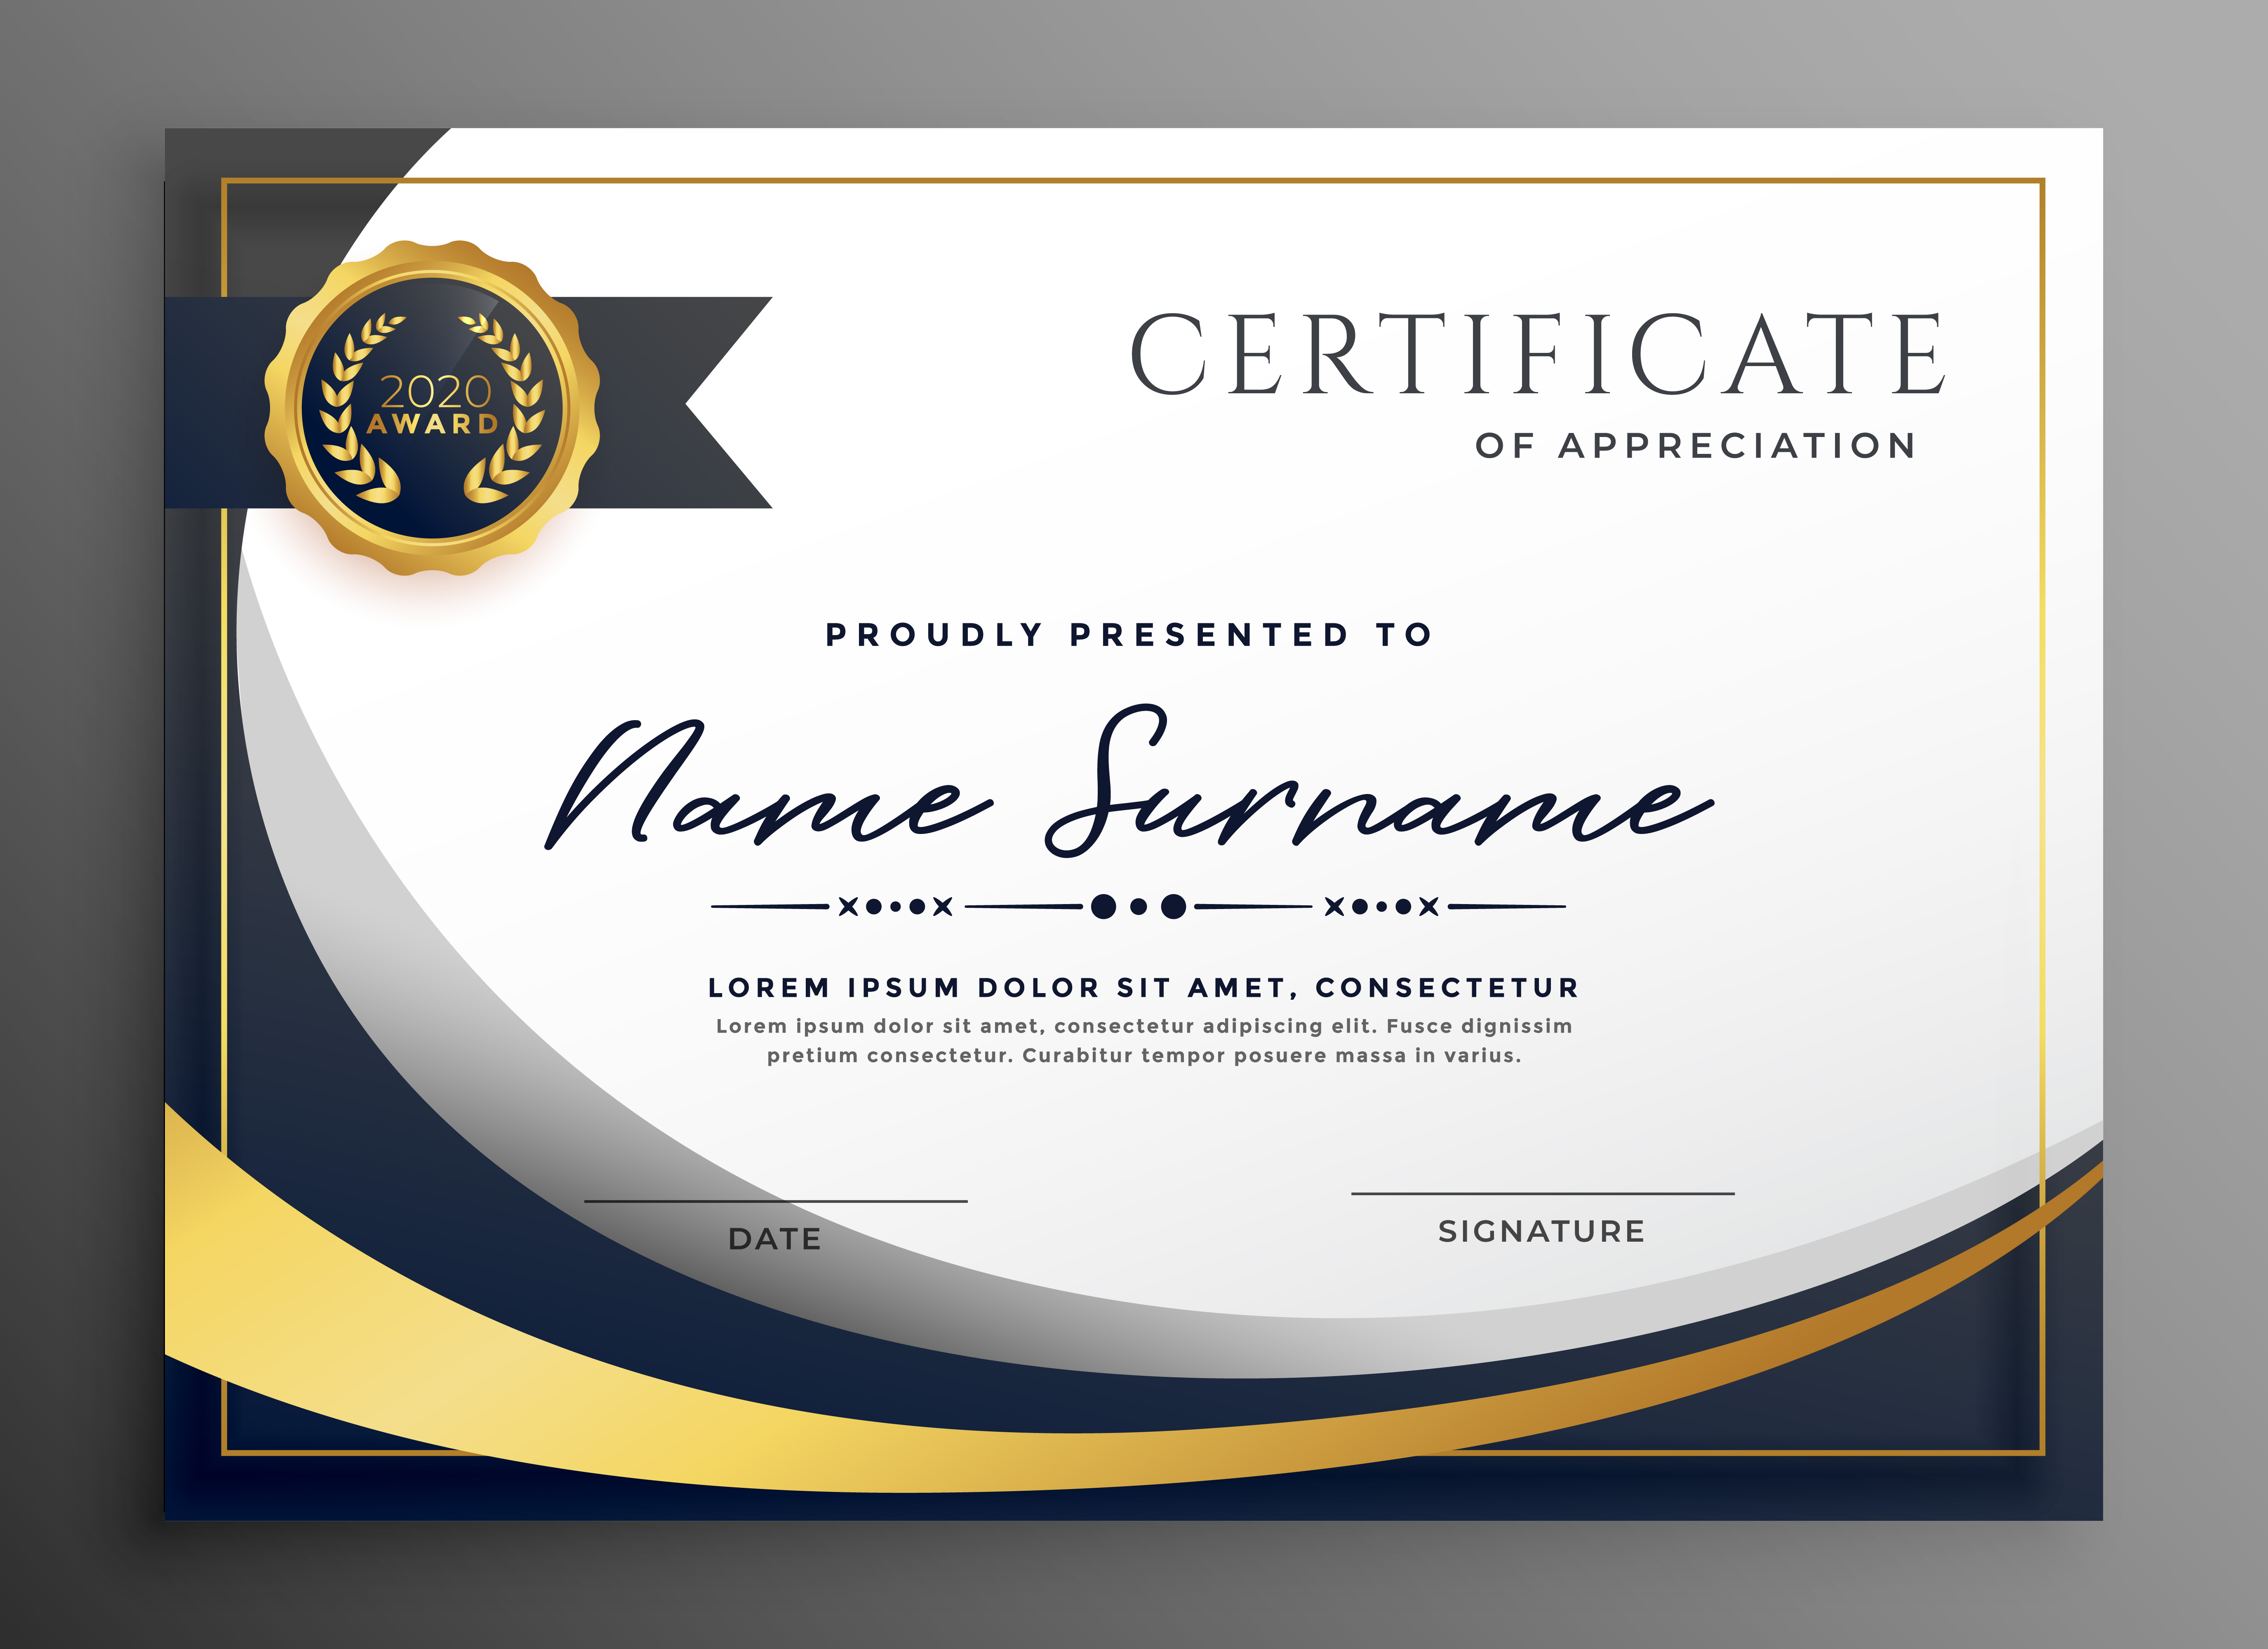 Certificate Background Vector At Getdrawings Com Free For